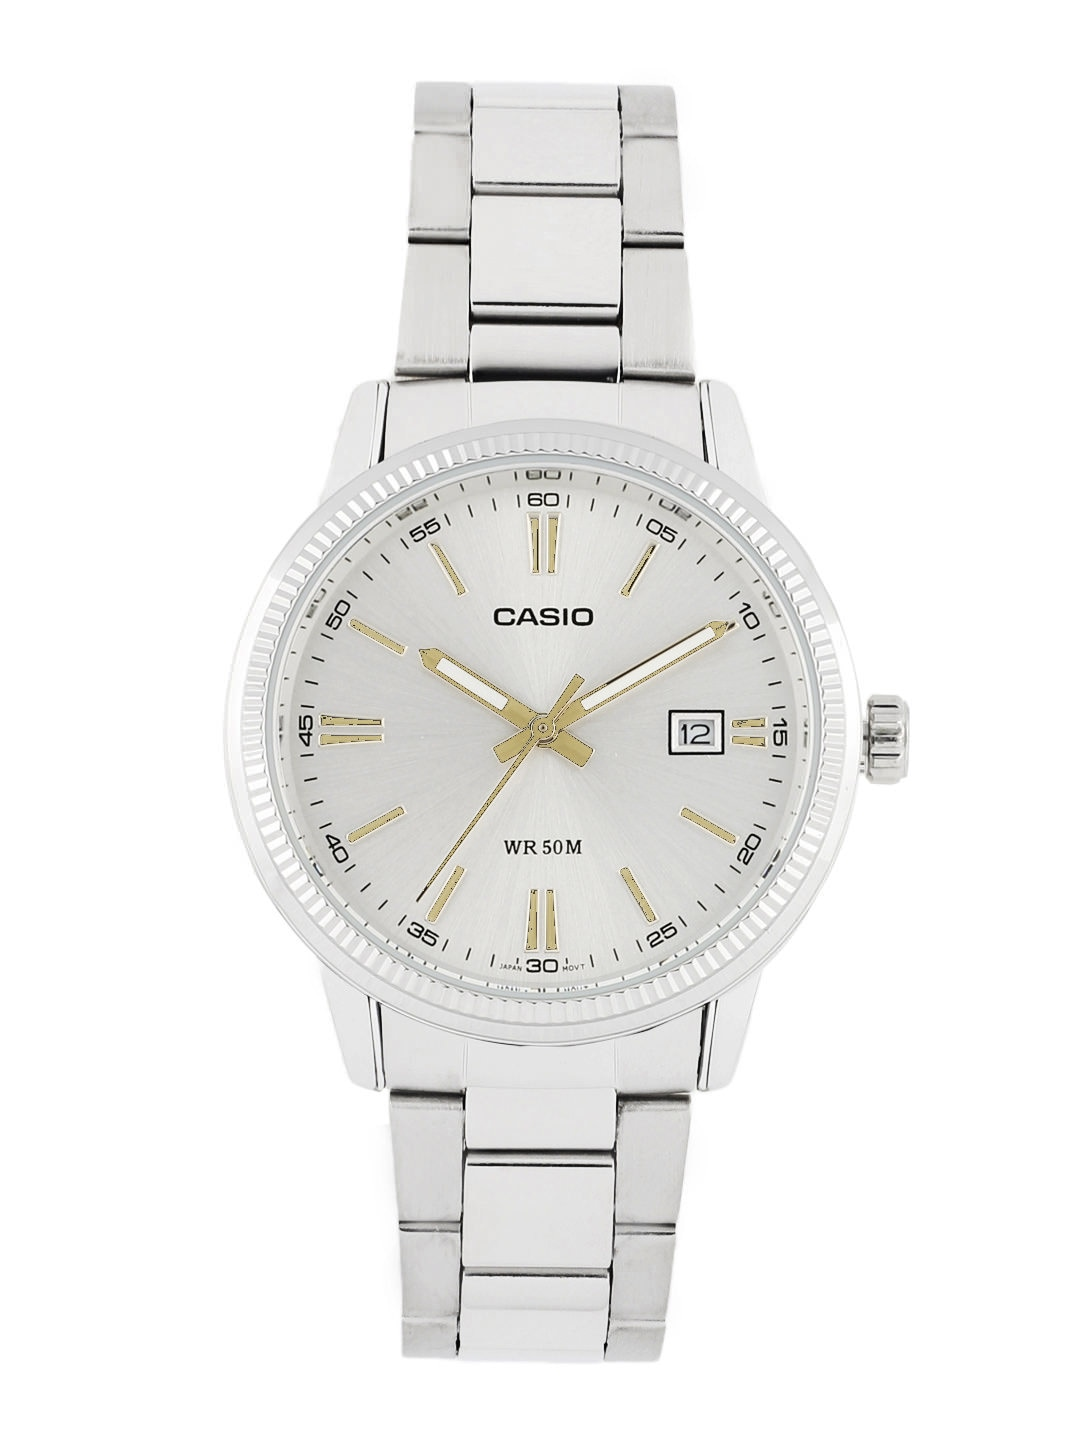 Casio Men Silver-Toned Dial Watch A488